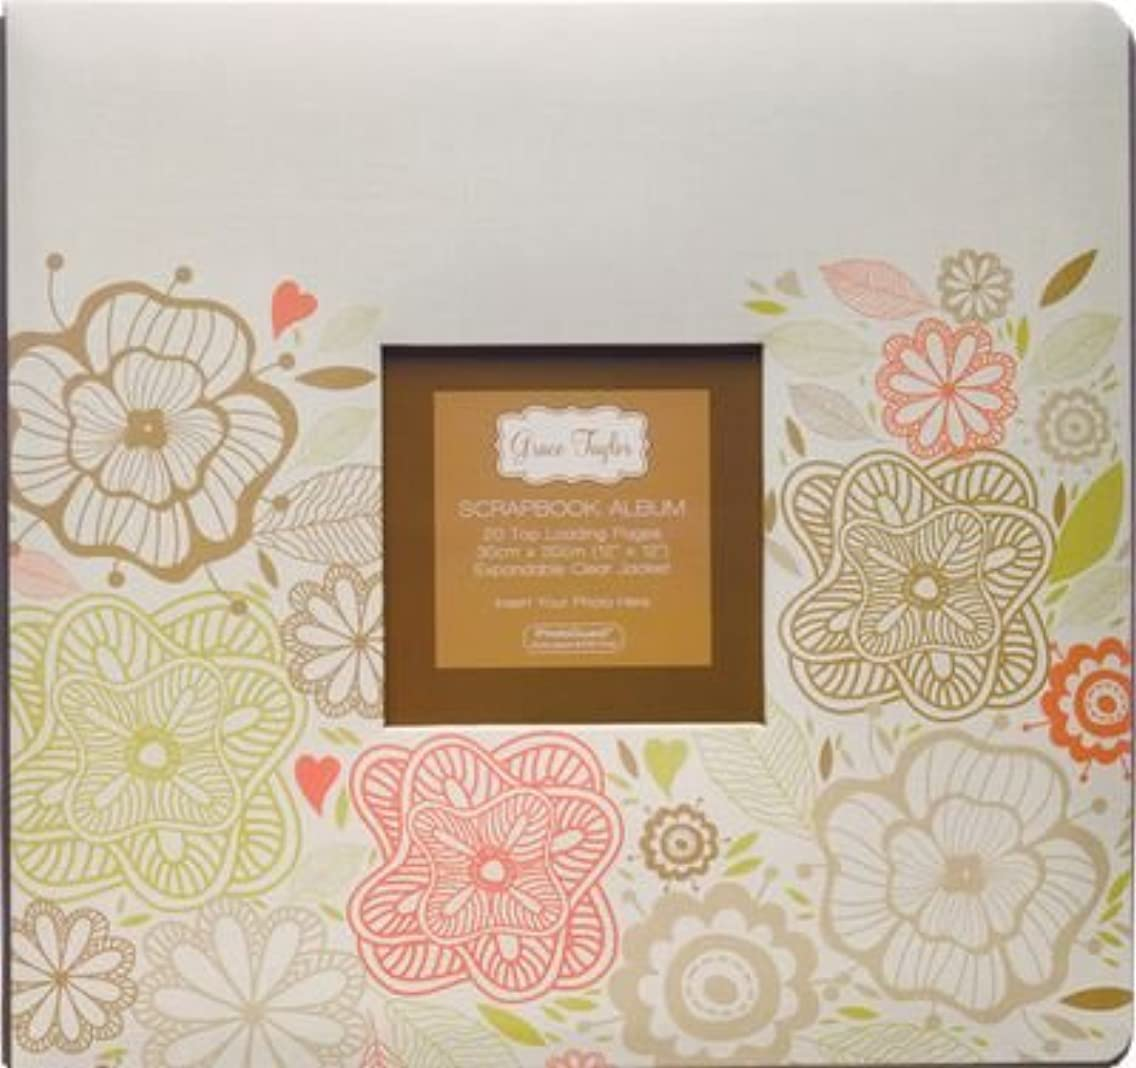 Grant Studios 12-Inch by 12-Inch Printed Postbound Album, Eco Floral